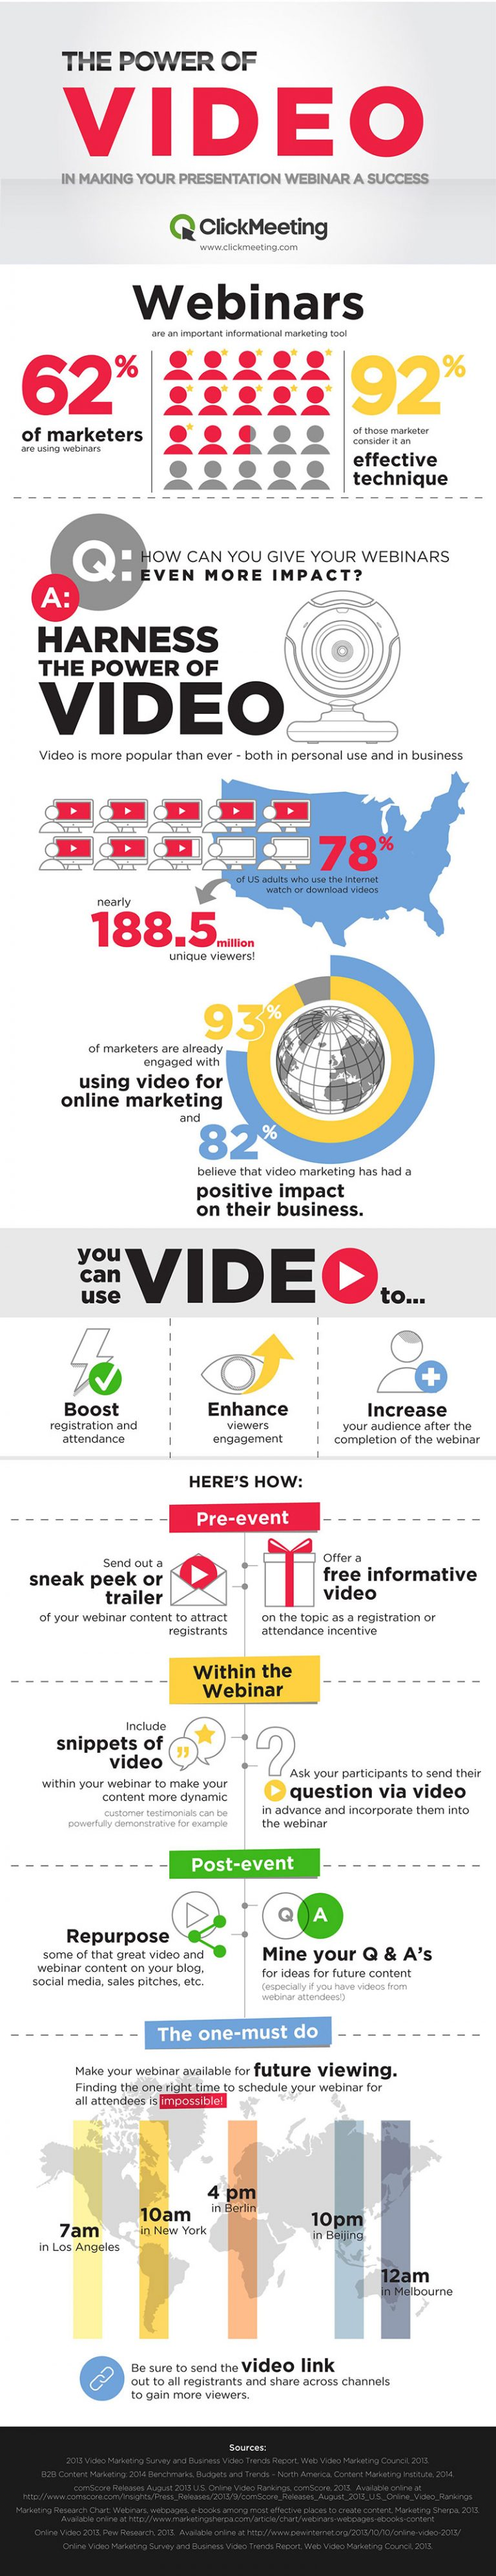 The power of video in making your webinar a success Webinars are an important informational marketing tool used by 62% of marketers. 92% of those marketers consider it an effective technique. Q: How can you give your webinars even more impact? A: Harness the power of video! Video is more popular than ever – both in personal use and in business 78% of US adults who use the Internet watch or download videos – nearly 188.5 million unique viewers!93% of marketers are already engaged with using video for online marketing and 82% believe that video marketing has had a positive impact on their business.You can use videos to:Boost registration and attendance, Enhance viewer engagement, Increase your audience after the completion of the webinarPre-event:Send out a sneak peak or trailer of your webinar content to attract registrants, Offer a free informative video on the topic as a registration or attendance incentive. Within the webinar: Ask your participants to send their questions via video in advance and incorporate them into the webinar, Include snippets of video within your webinar to make your content more dynamic - customer testimonials can be powerfully demonstrative for example. Post event: Repurpose some of that great video and webinar content on your blog, social media, sales pitches, etc. Mine your Q & A's for ideas for future content (especially if you have videos from webinar attendees!)The one must-do: Make your webinar available for future viewing.Finding the one right time to schedule your webinar for all attendees is impossible! 10 am in New York = 4 pm in Berlin = 10 pm in Beijing = 12 am in Melbourne = 7 am in Los Angeles. Be sure to send the video link out to all registrants and share across channels to gain more viewers.